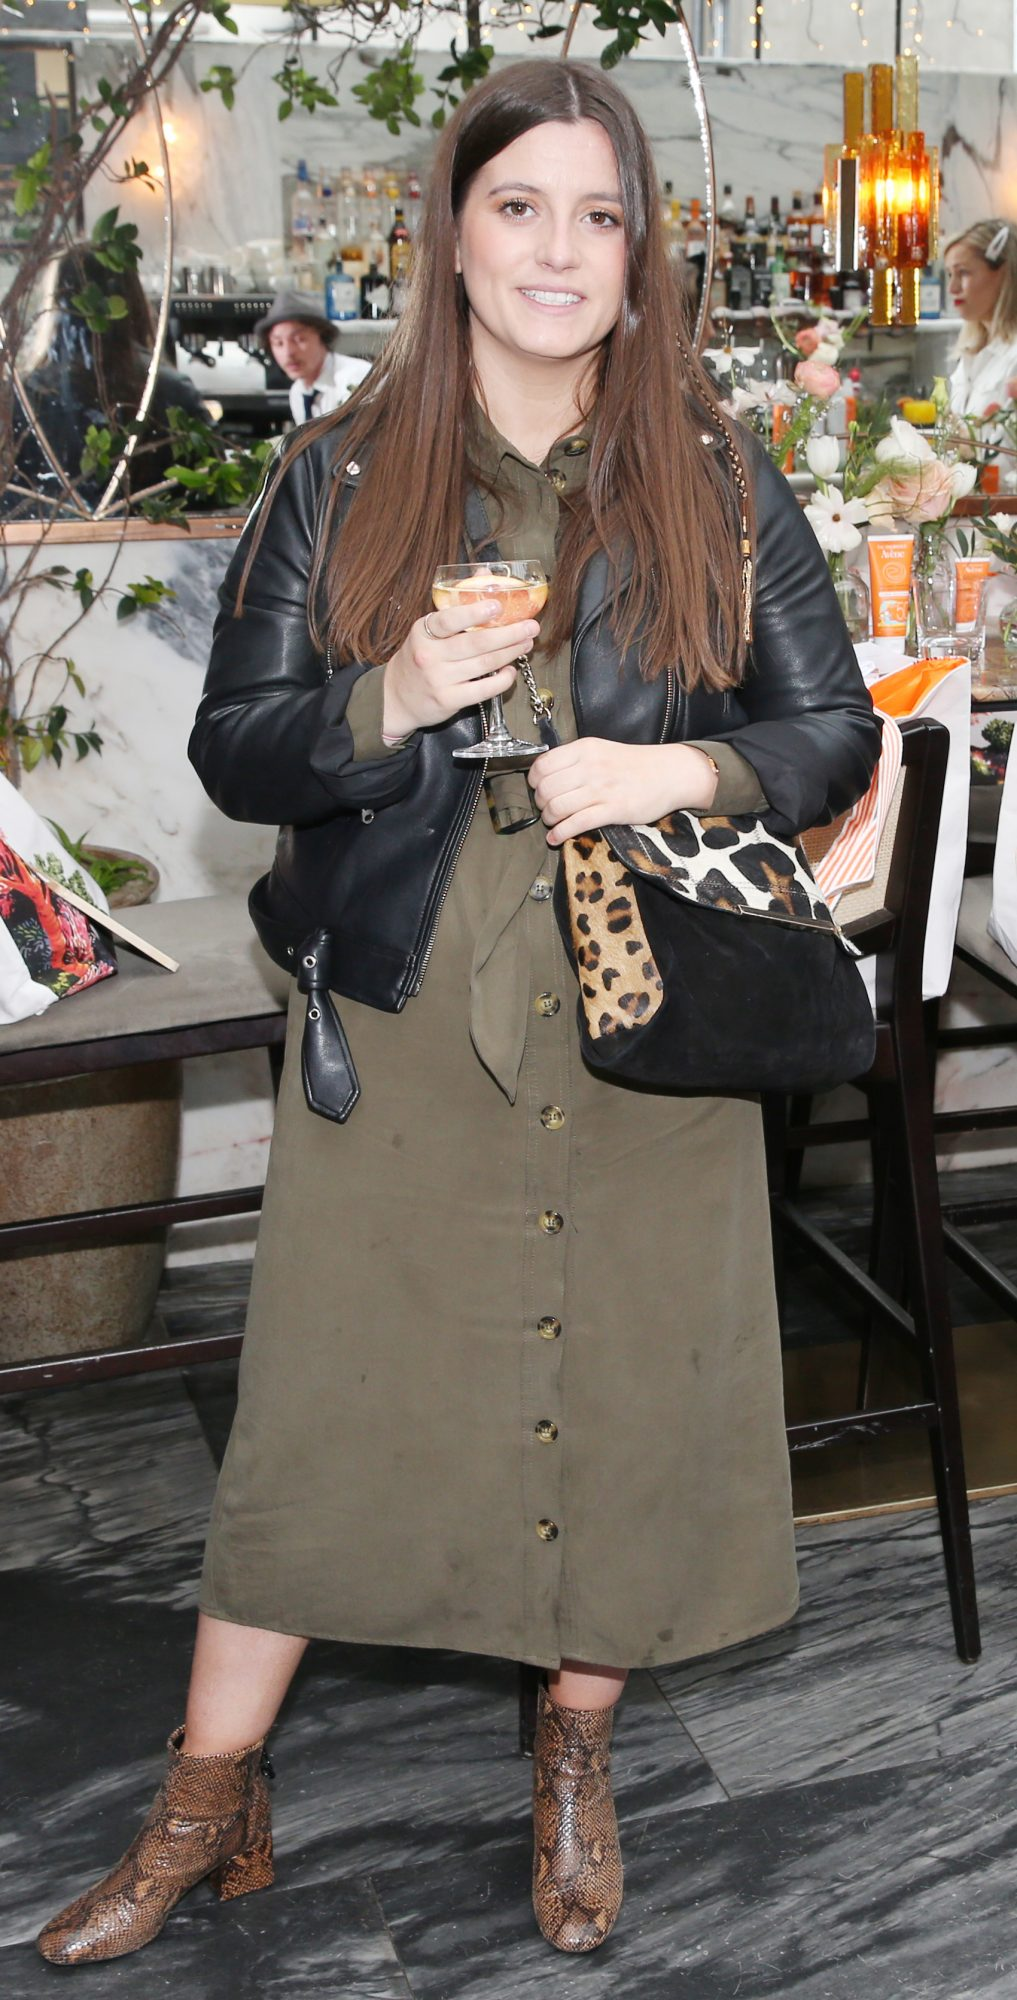 Pictured is Keeva Tyrrell at the launch of the new Avène Expert Suncare Range in The Grayson Dublin. The new range of suncare from the French brand is suitable for all skin types and includes a Sports Sun Cream, a City Shield BB Style High Protection Face Cream, two new SPF Body Sprays and a new Very High Protection Children's SPF. For more information visit www.avene.ie. Photo: Leon Farrell/Photocall Ireland.